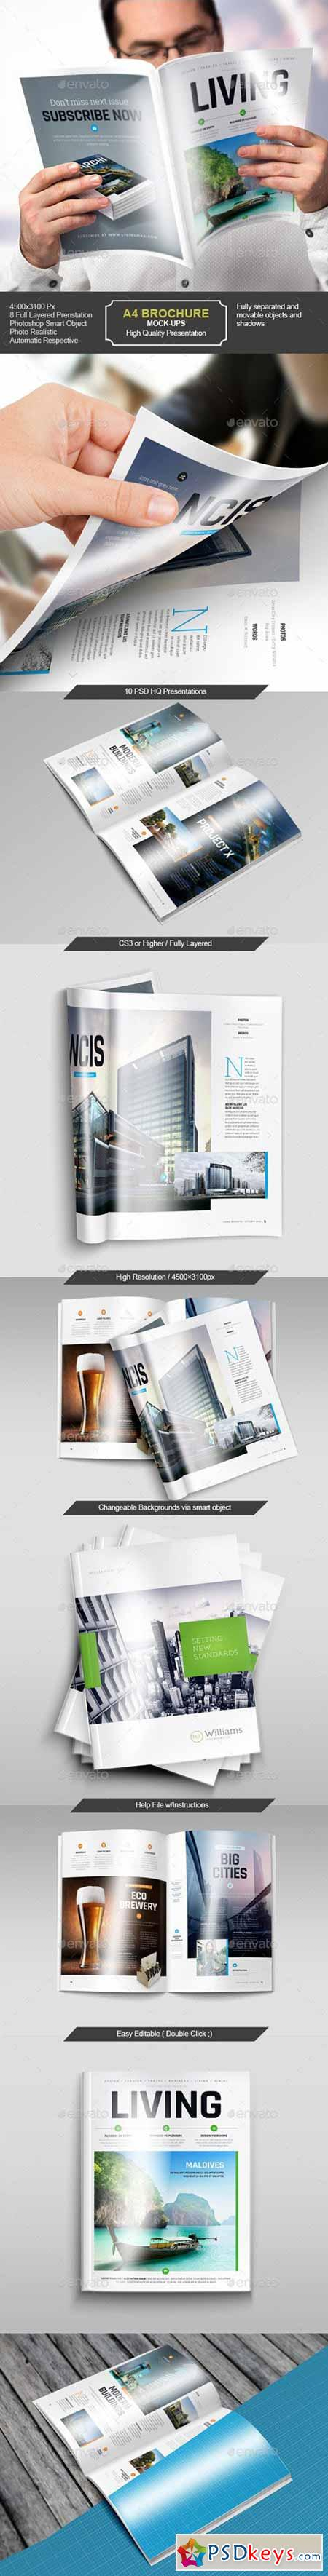 Mock-Up » page 182 » Free Download Photoshop Vector Stock